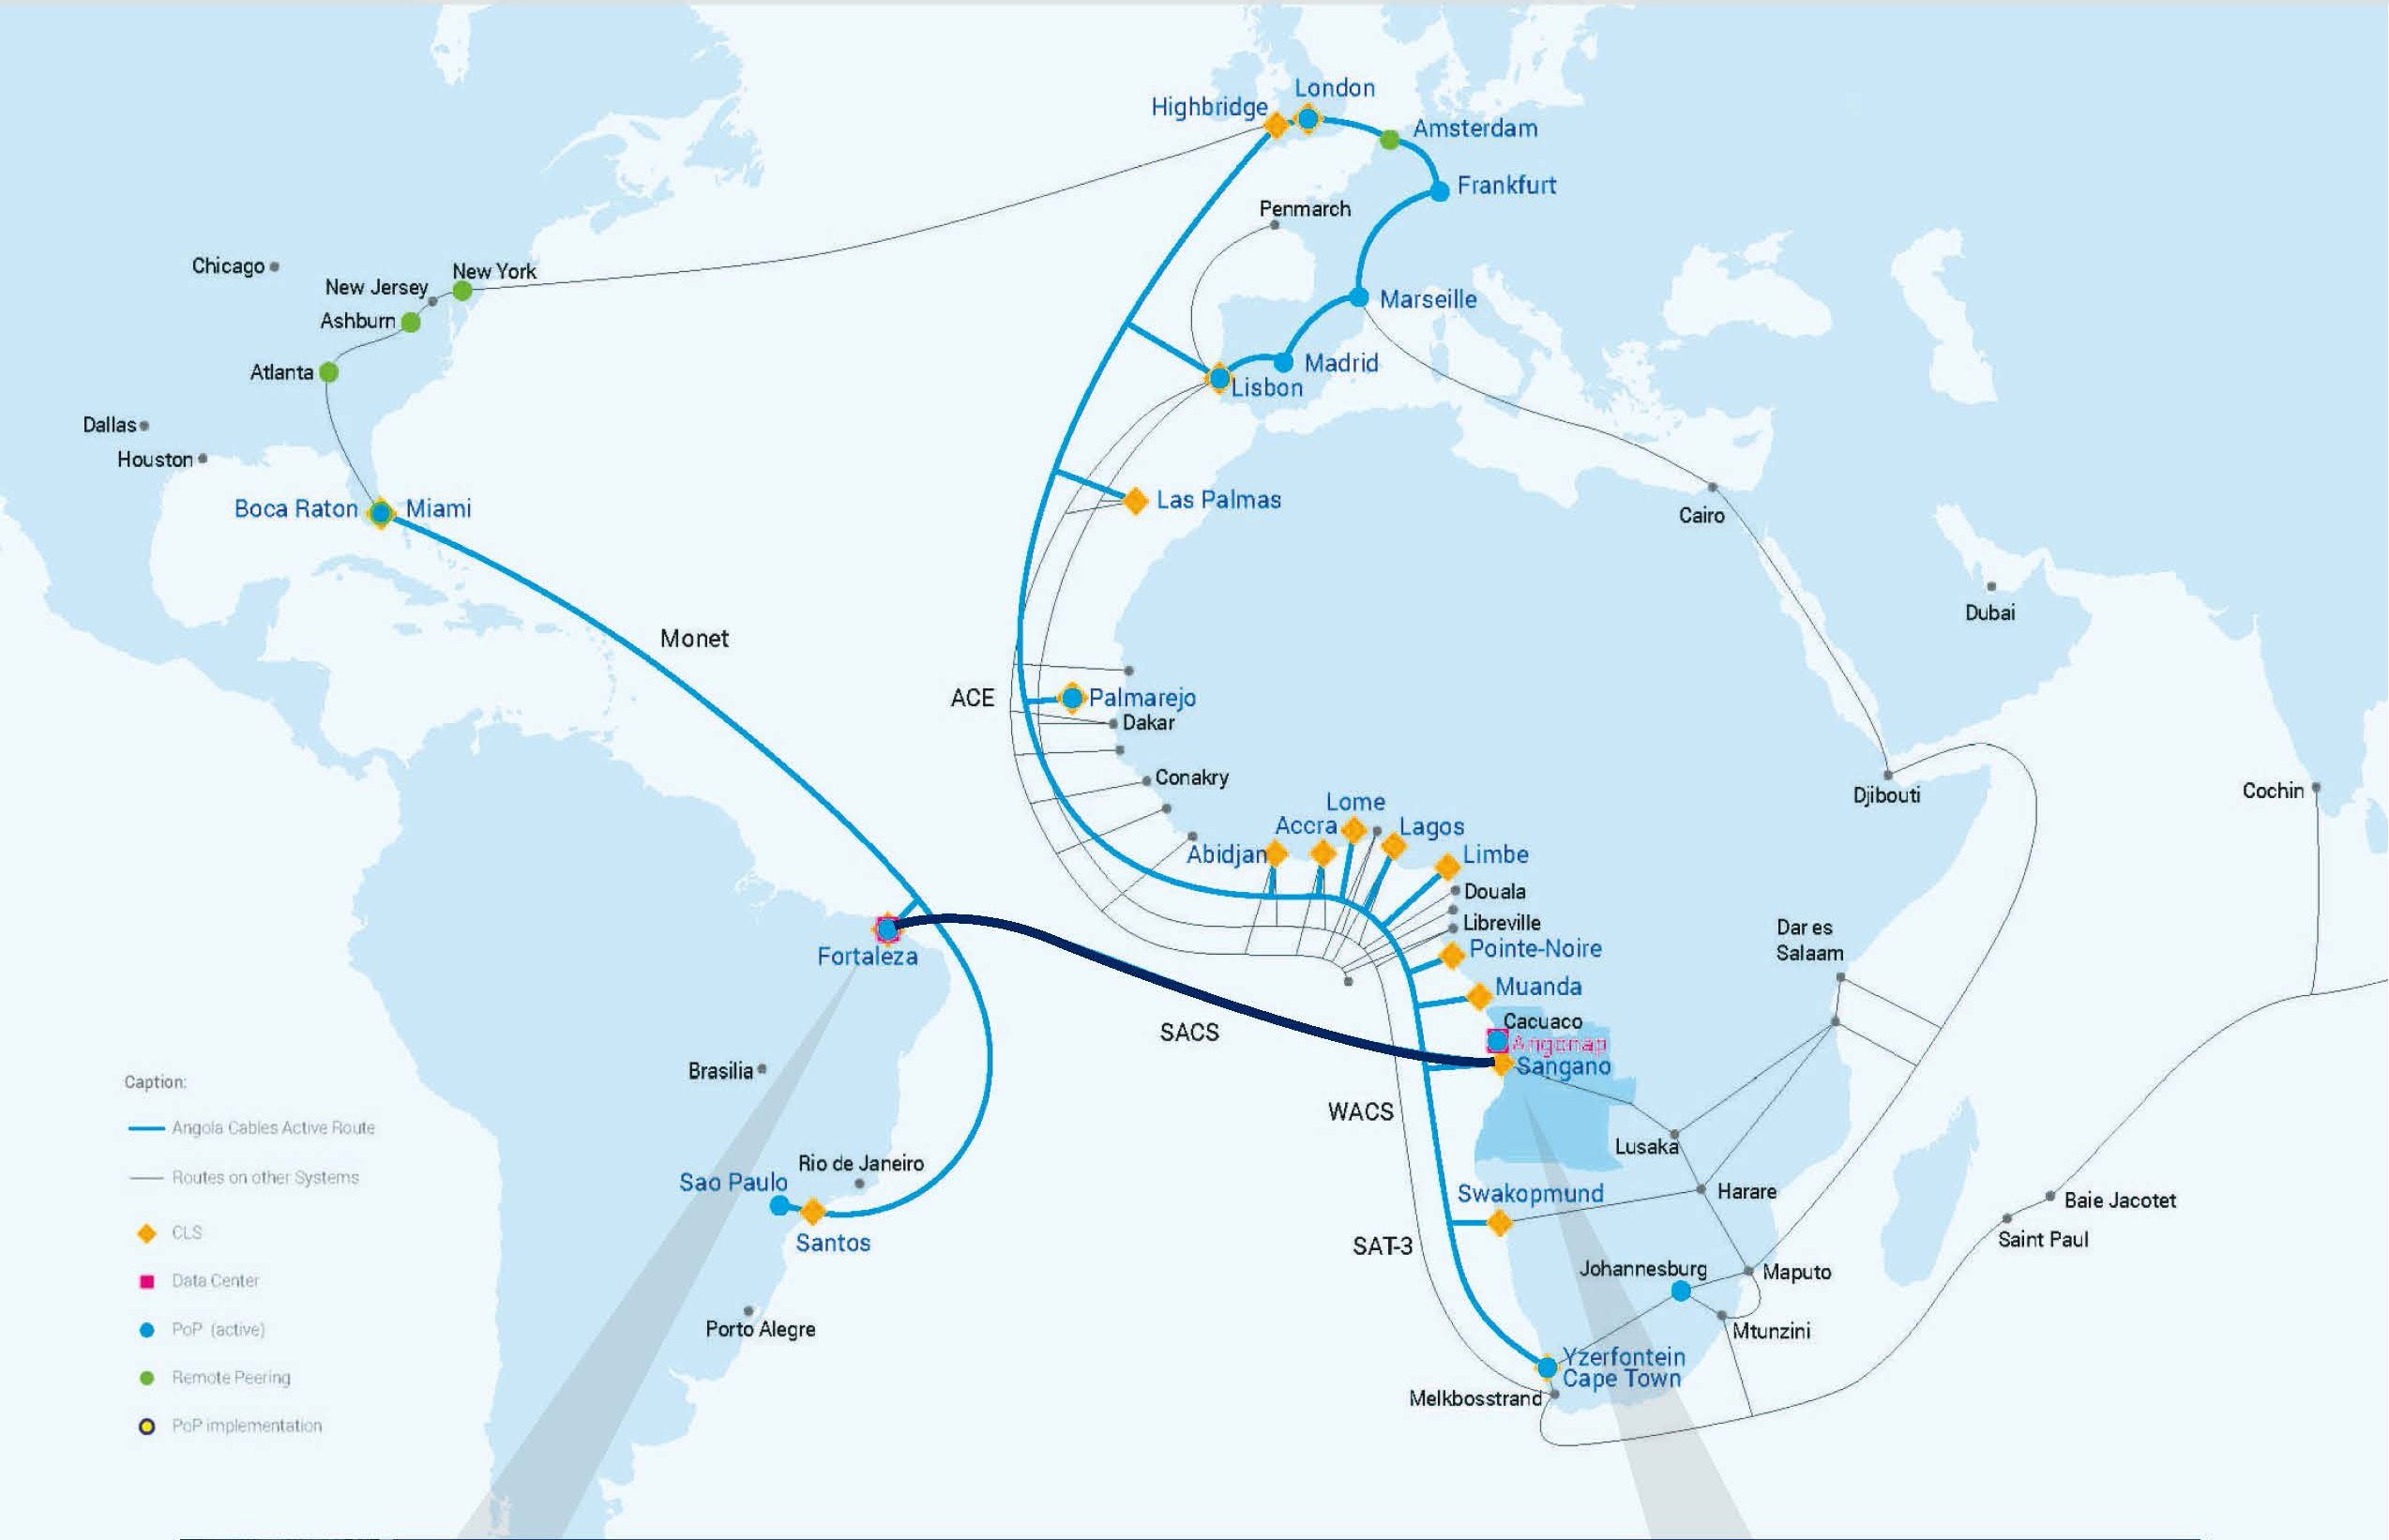 Africa Map Angola.Angola Cables Lights Up World S First Submarine Cable Linking Africa